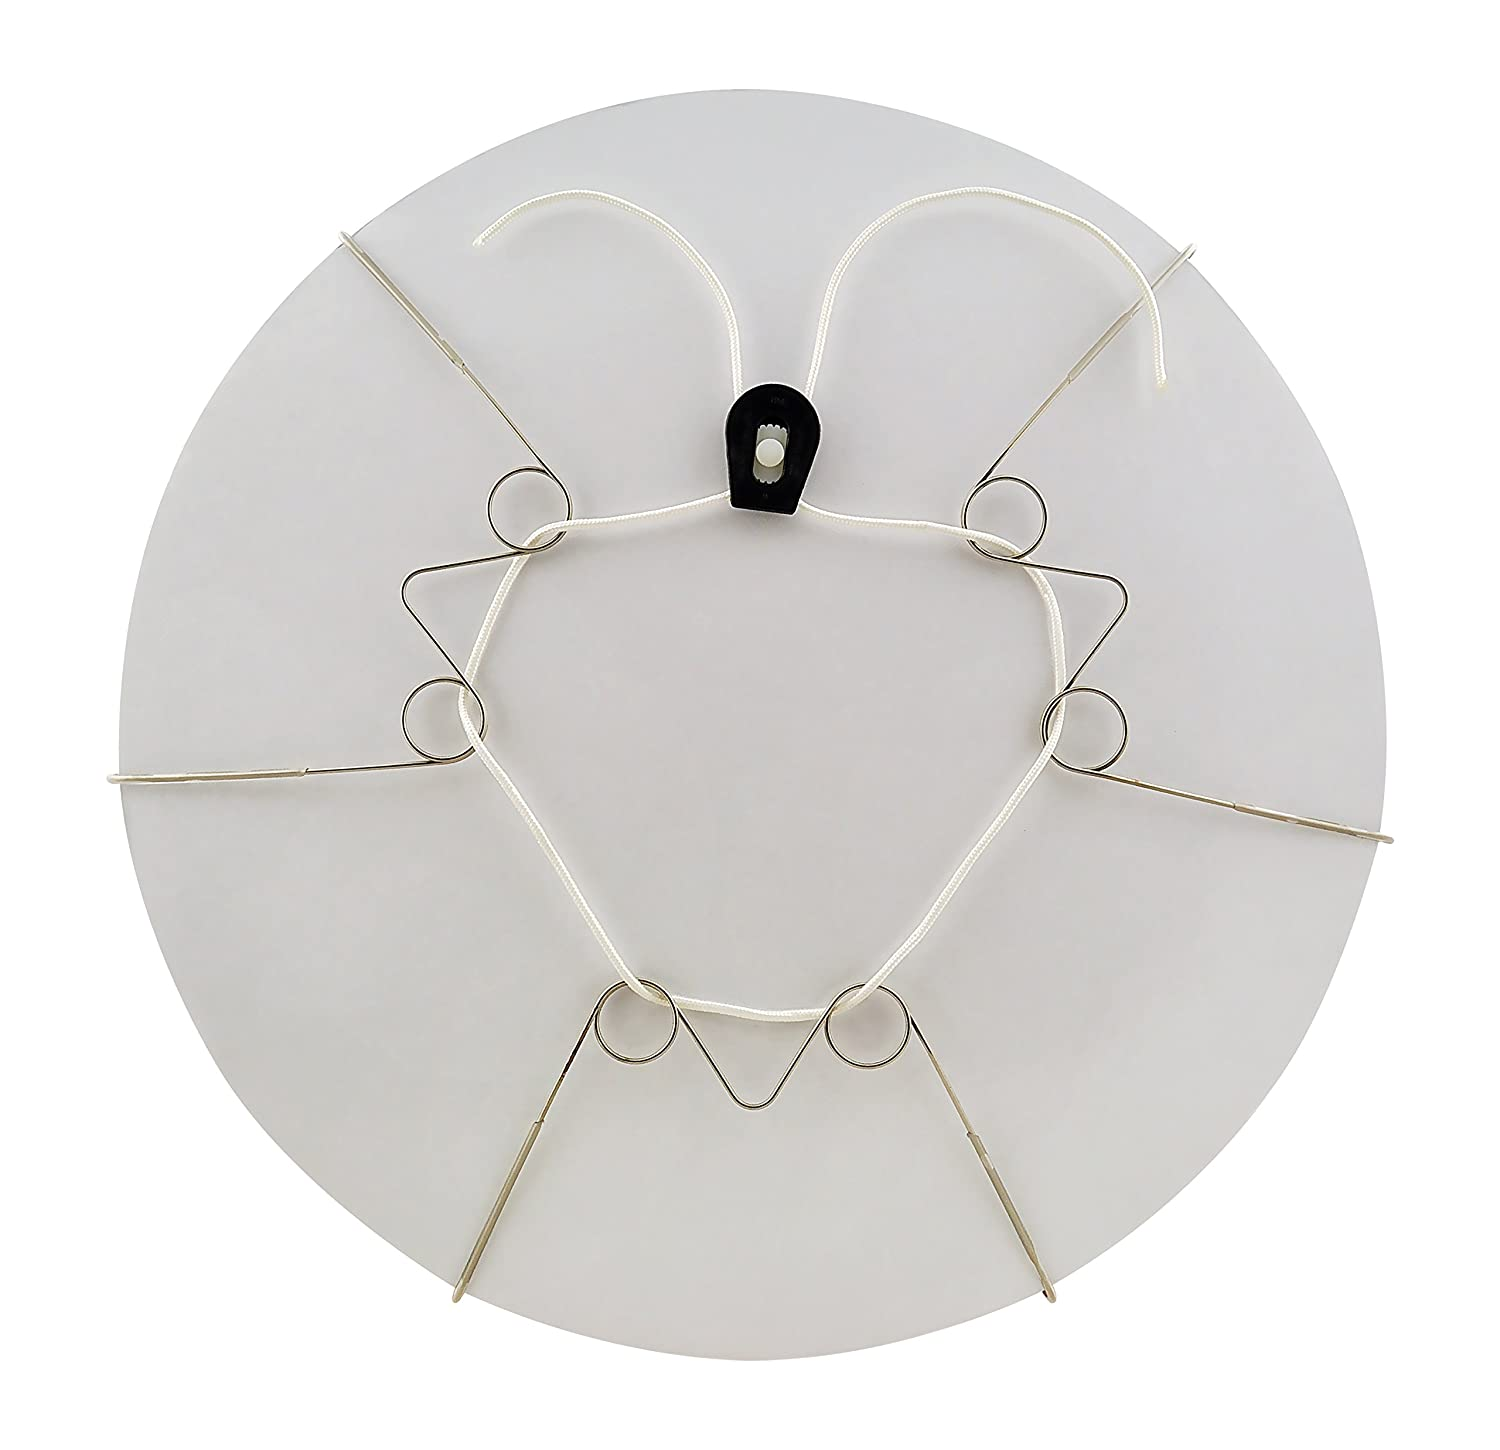 Display Buddie Large Adjustable Plate Holder Decorative Plate Wall Hanger Plate Hangers For The Wall Vase Hanger Bowl Hanger And More Hang